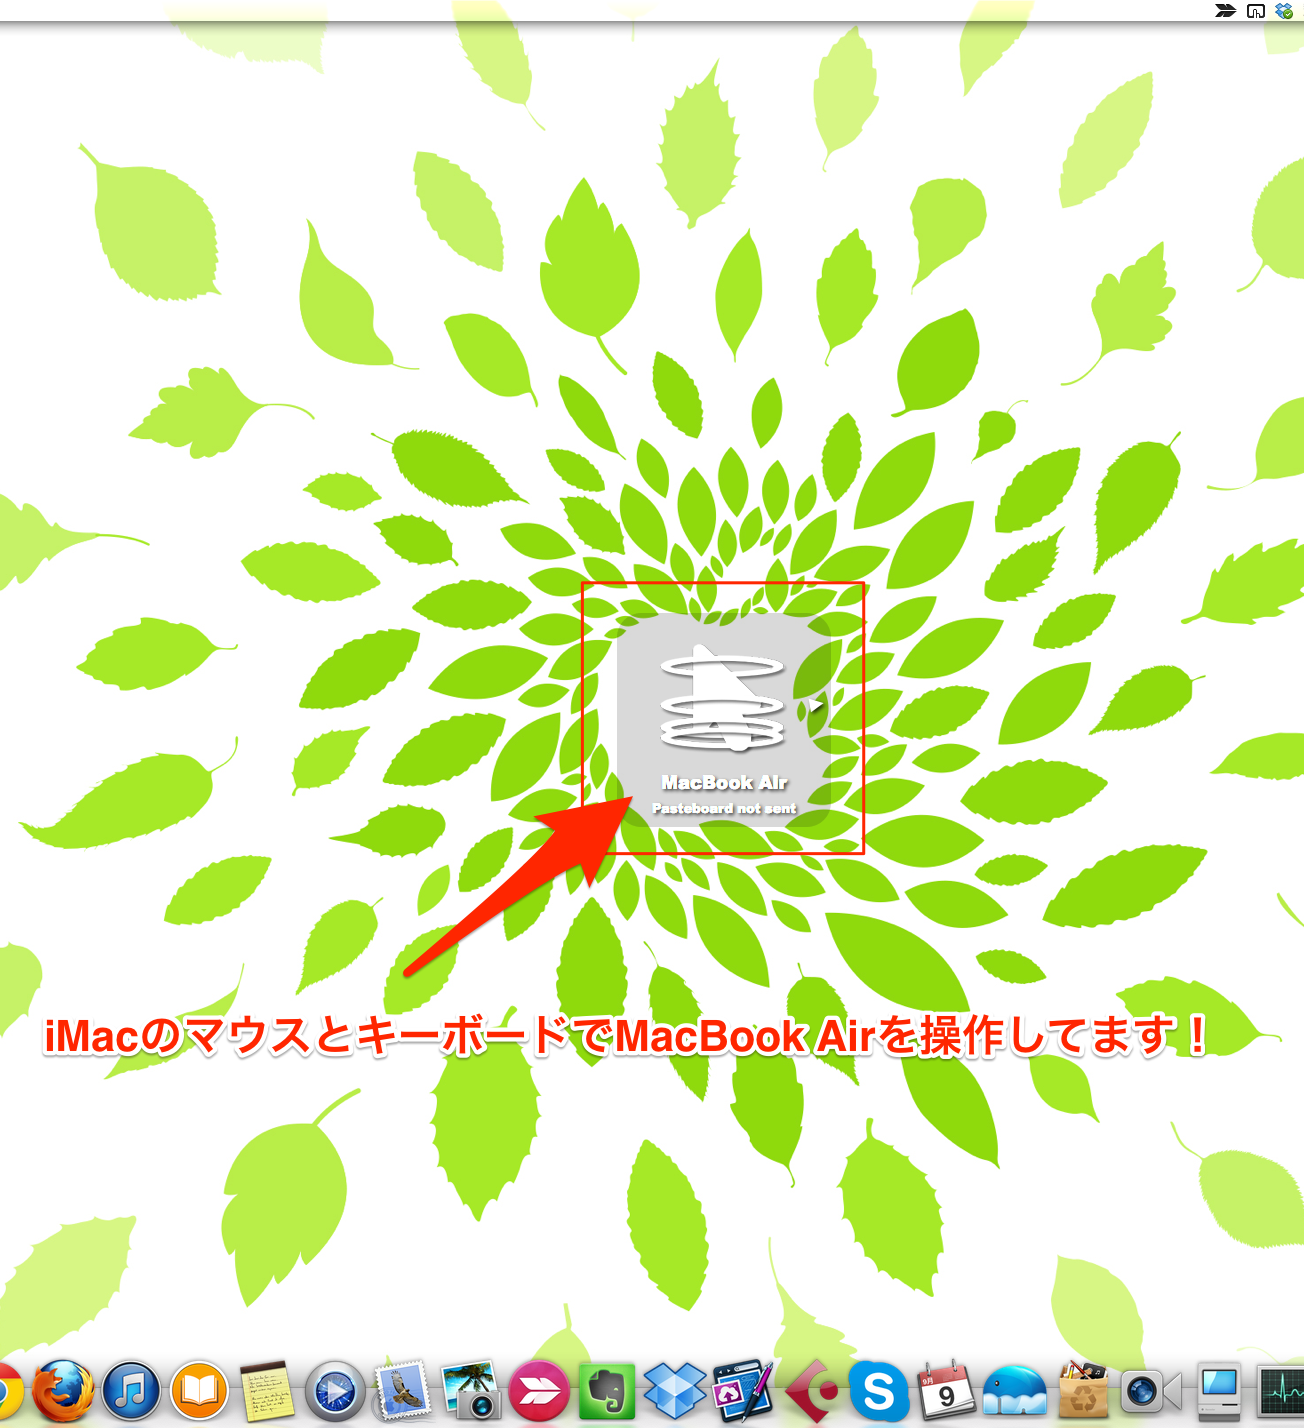 IMG_7972.PNG